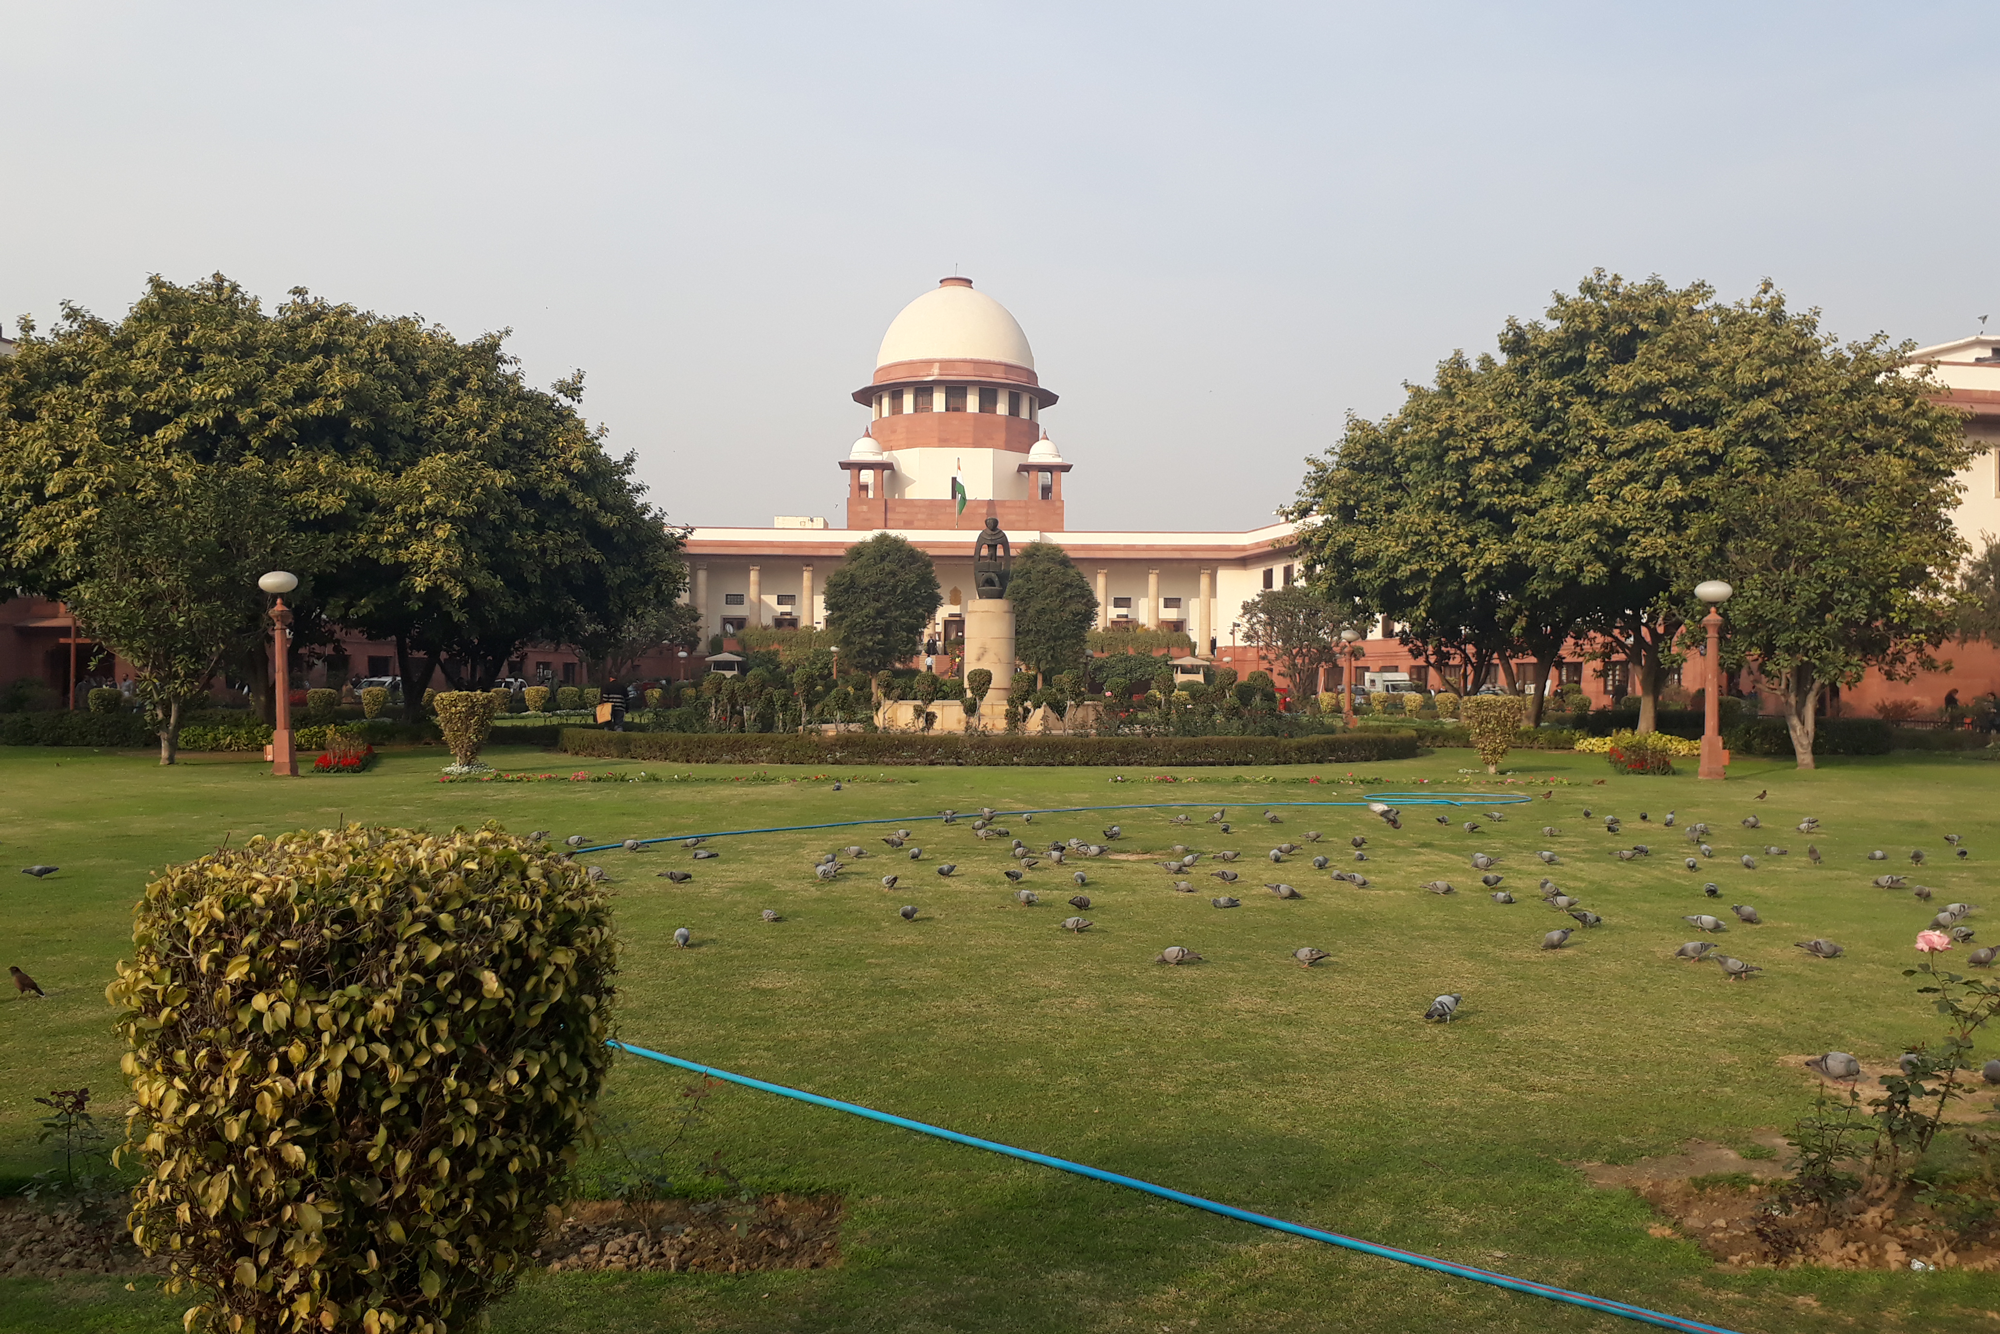 Indian Supreme Court rules unanimously that gay sex is not a crime